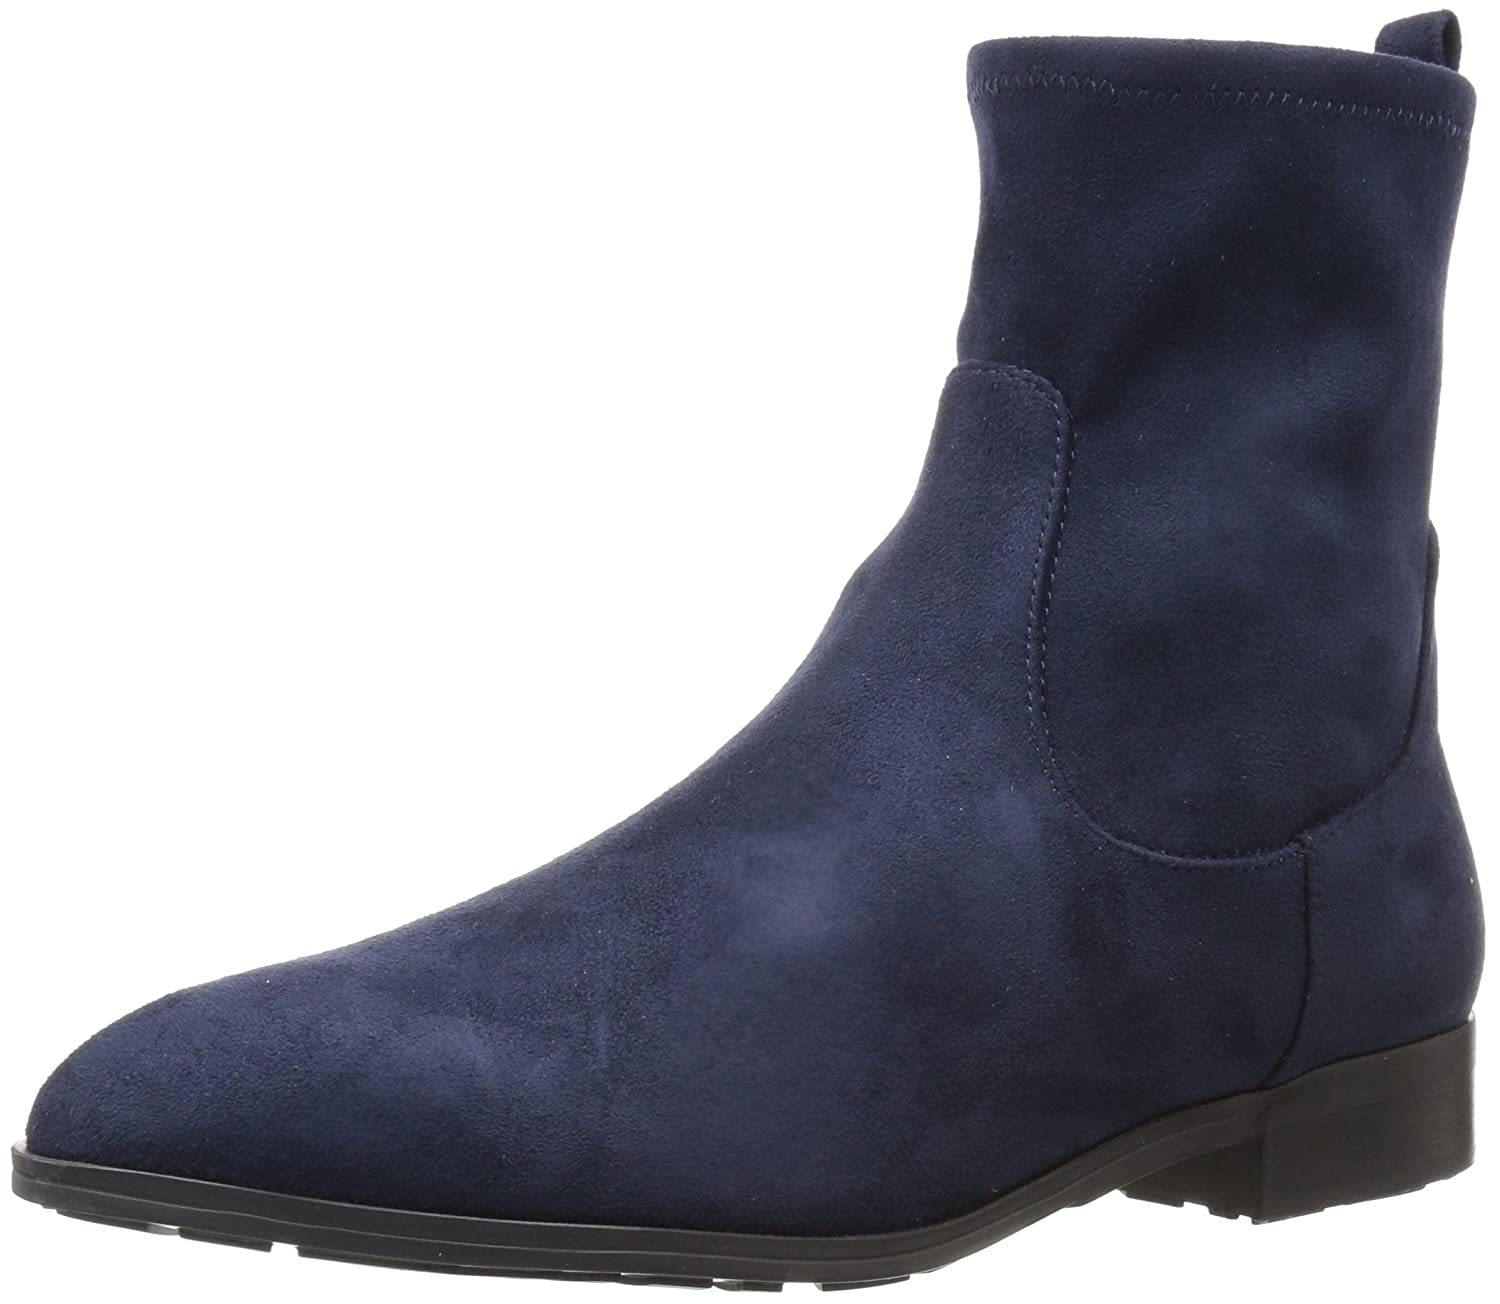 Marc Fisher Women's Oshana Fashion Boot B06XWN312R 11 B(M) US|Midnight